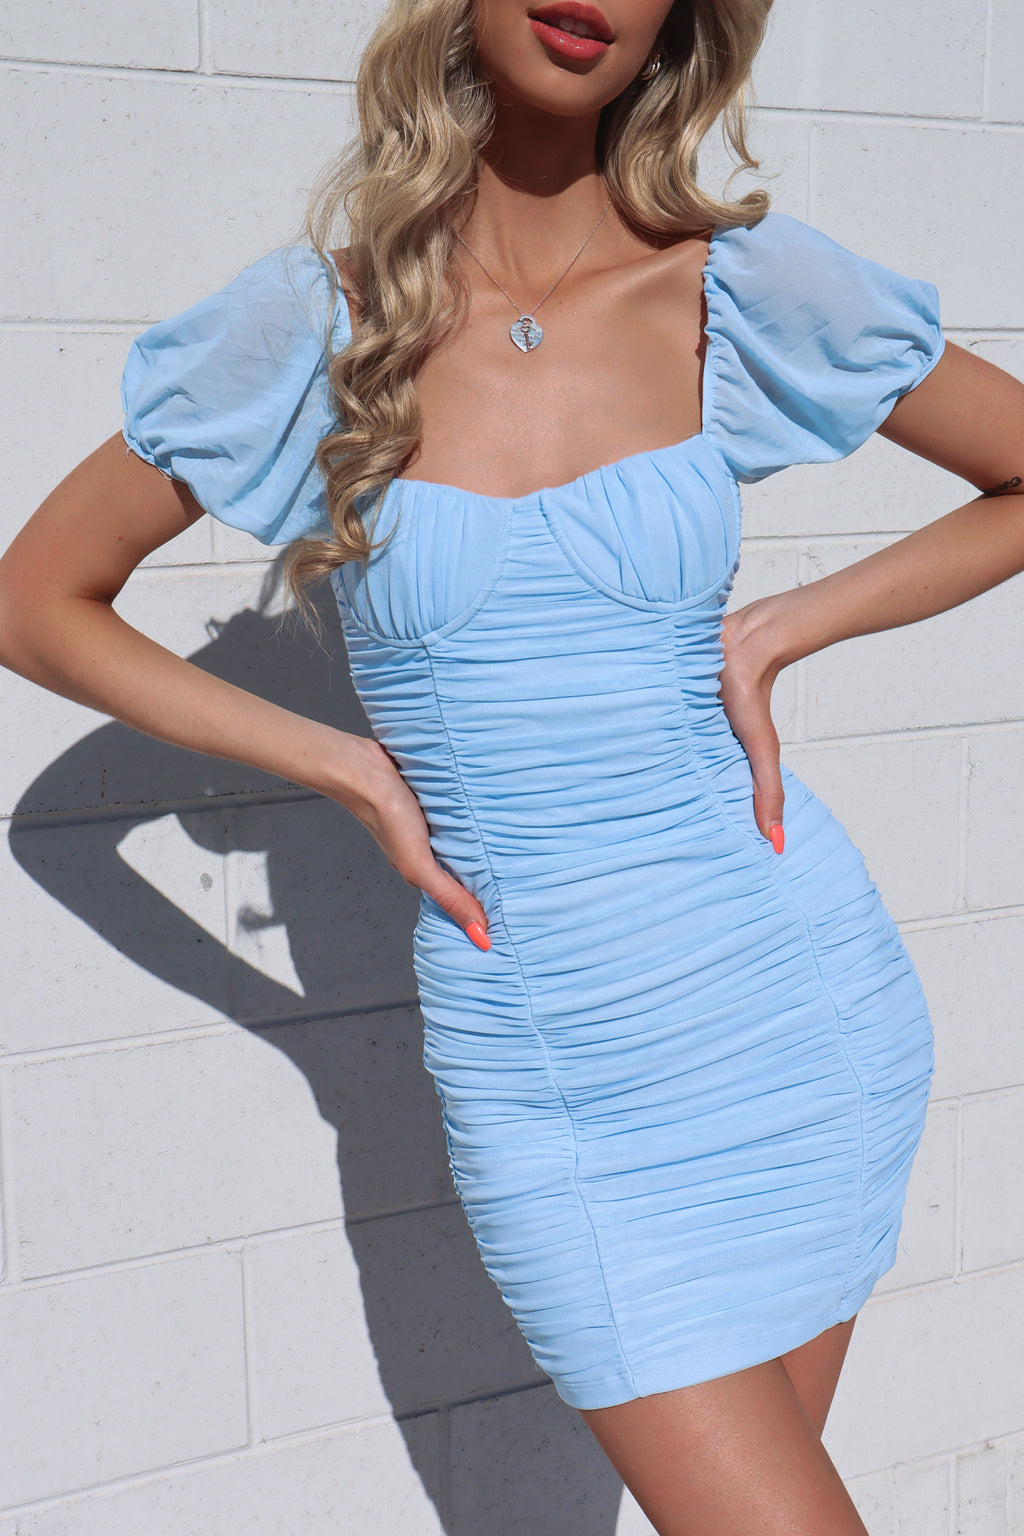 Koko Mesh Dress - Baby Blue